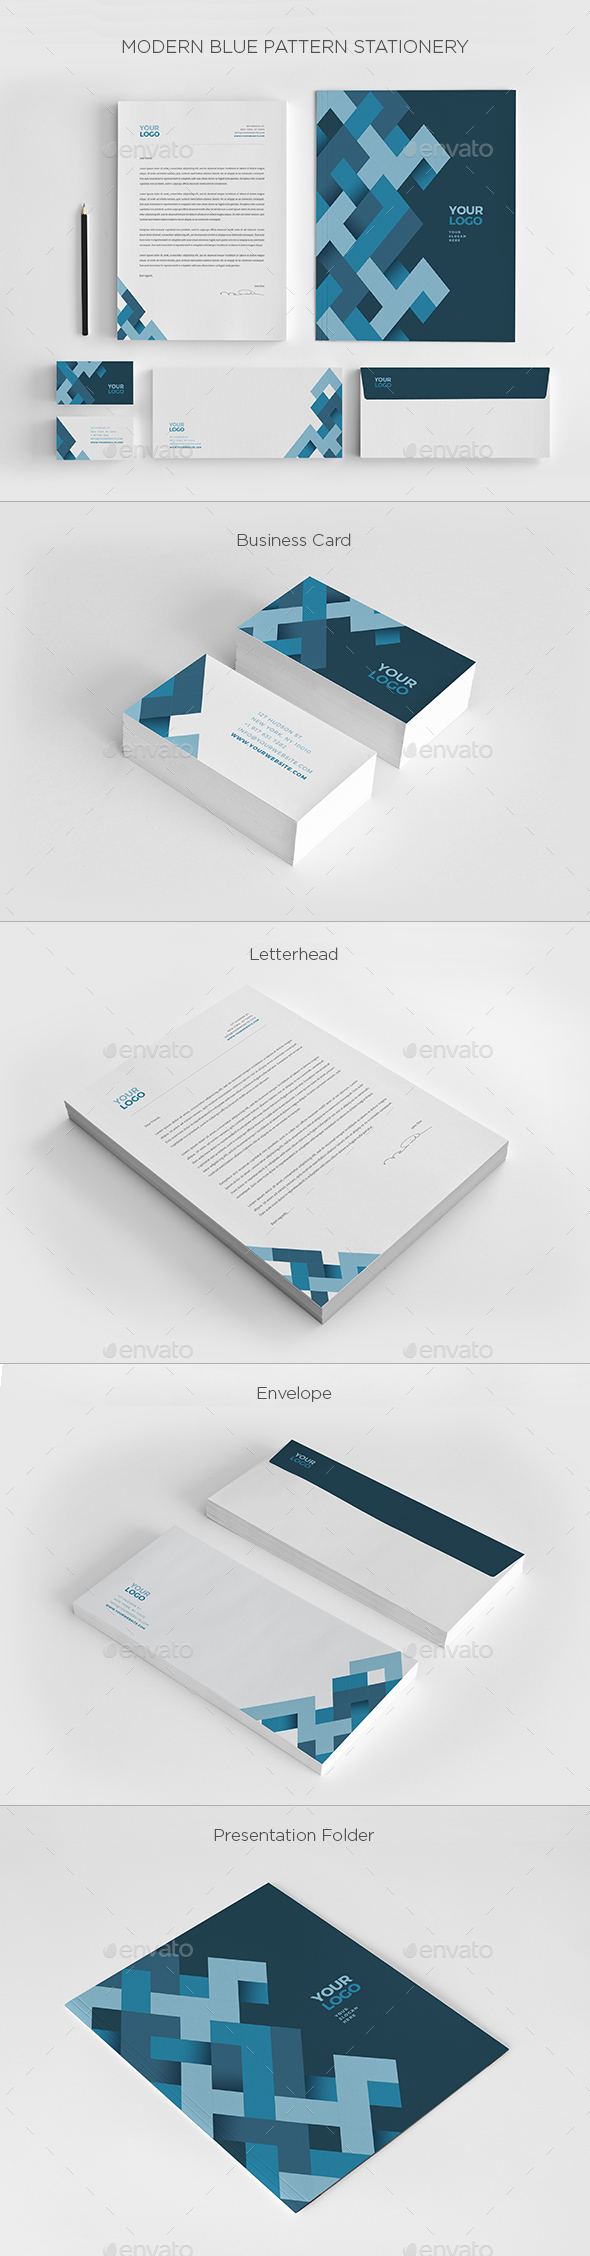 Modern Blue Pattern Stationery - Stationery Print Templates